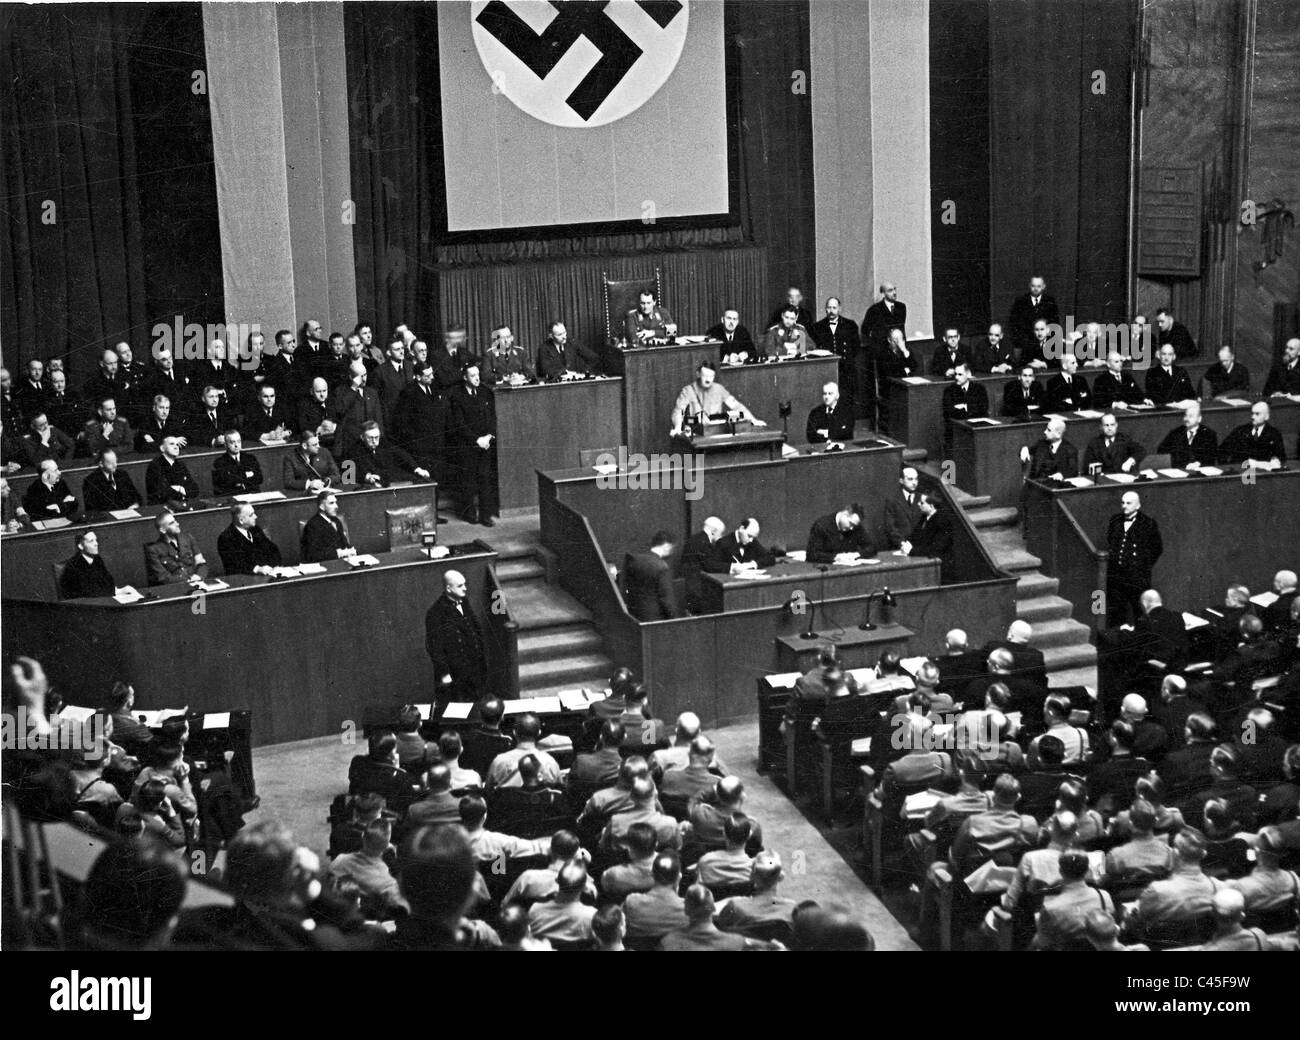 Hitler speaks at the opening session of the Reichstag 1933 - Stock Image